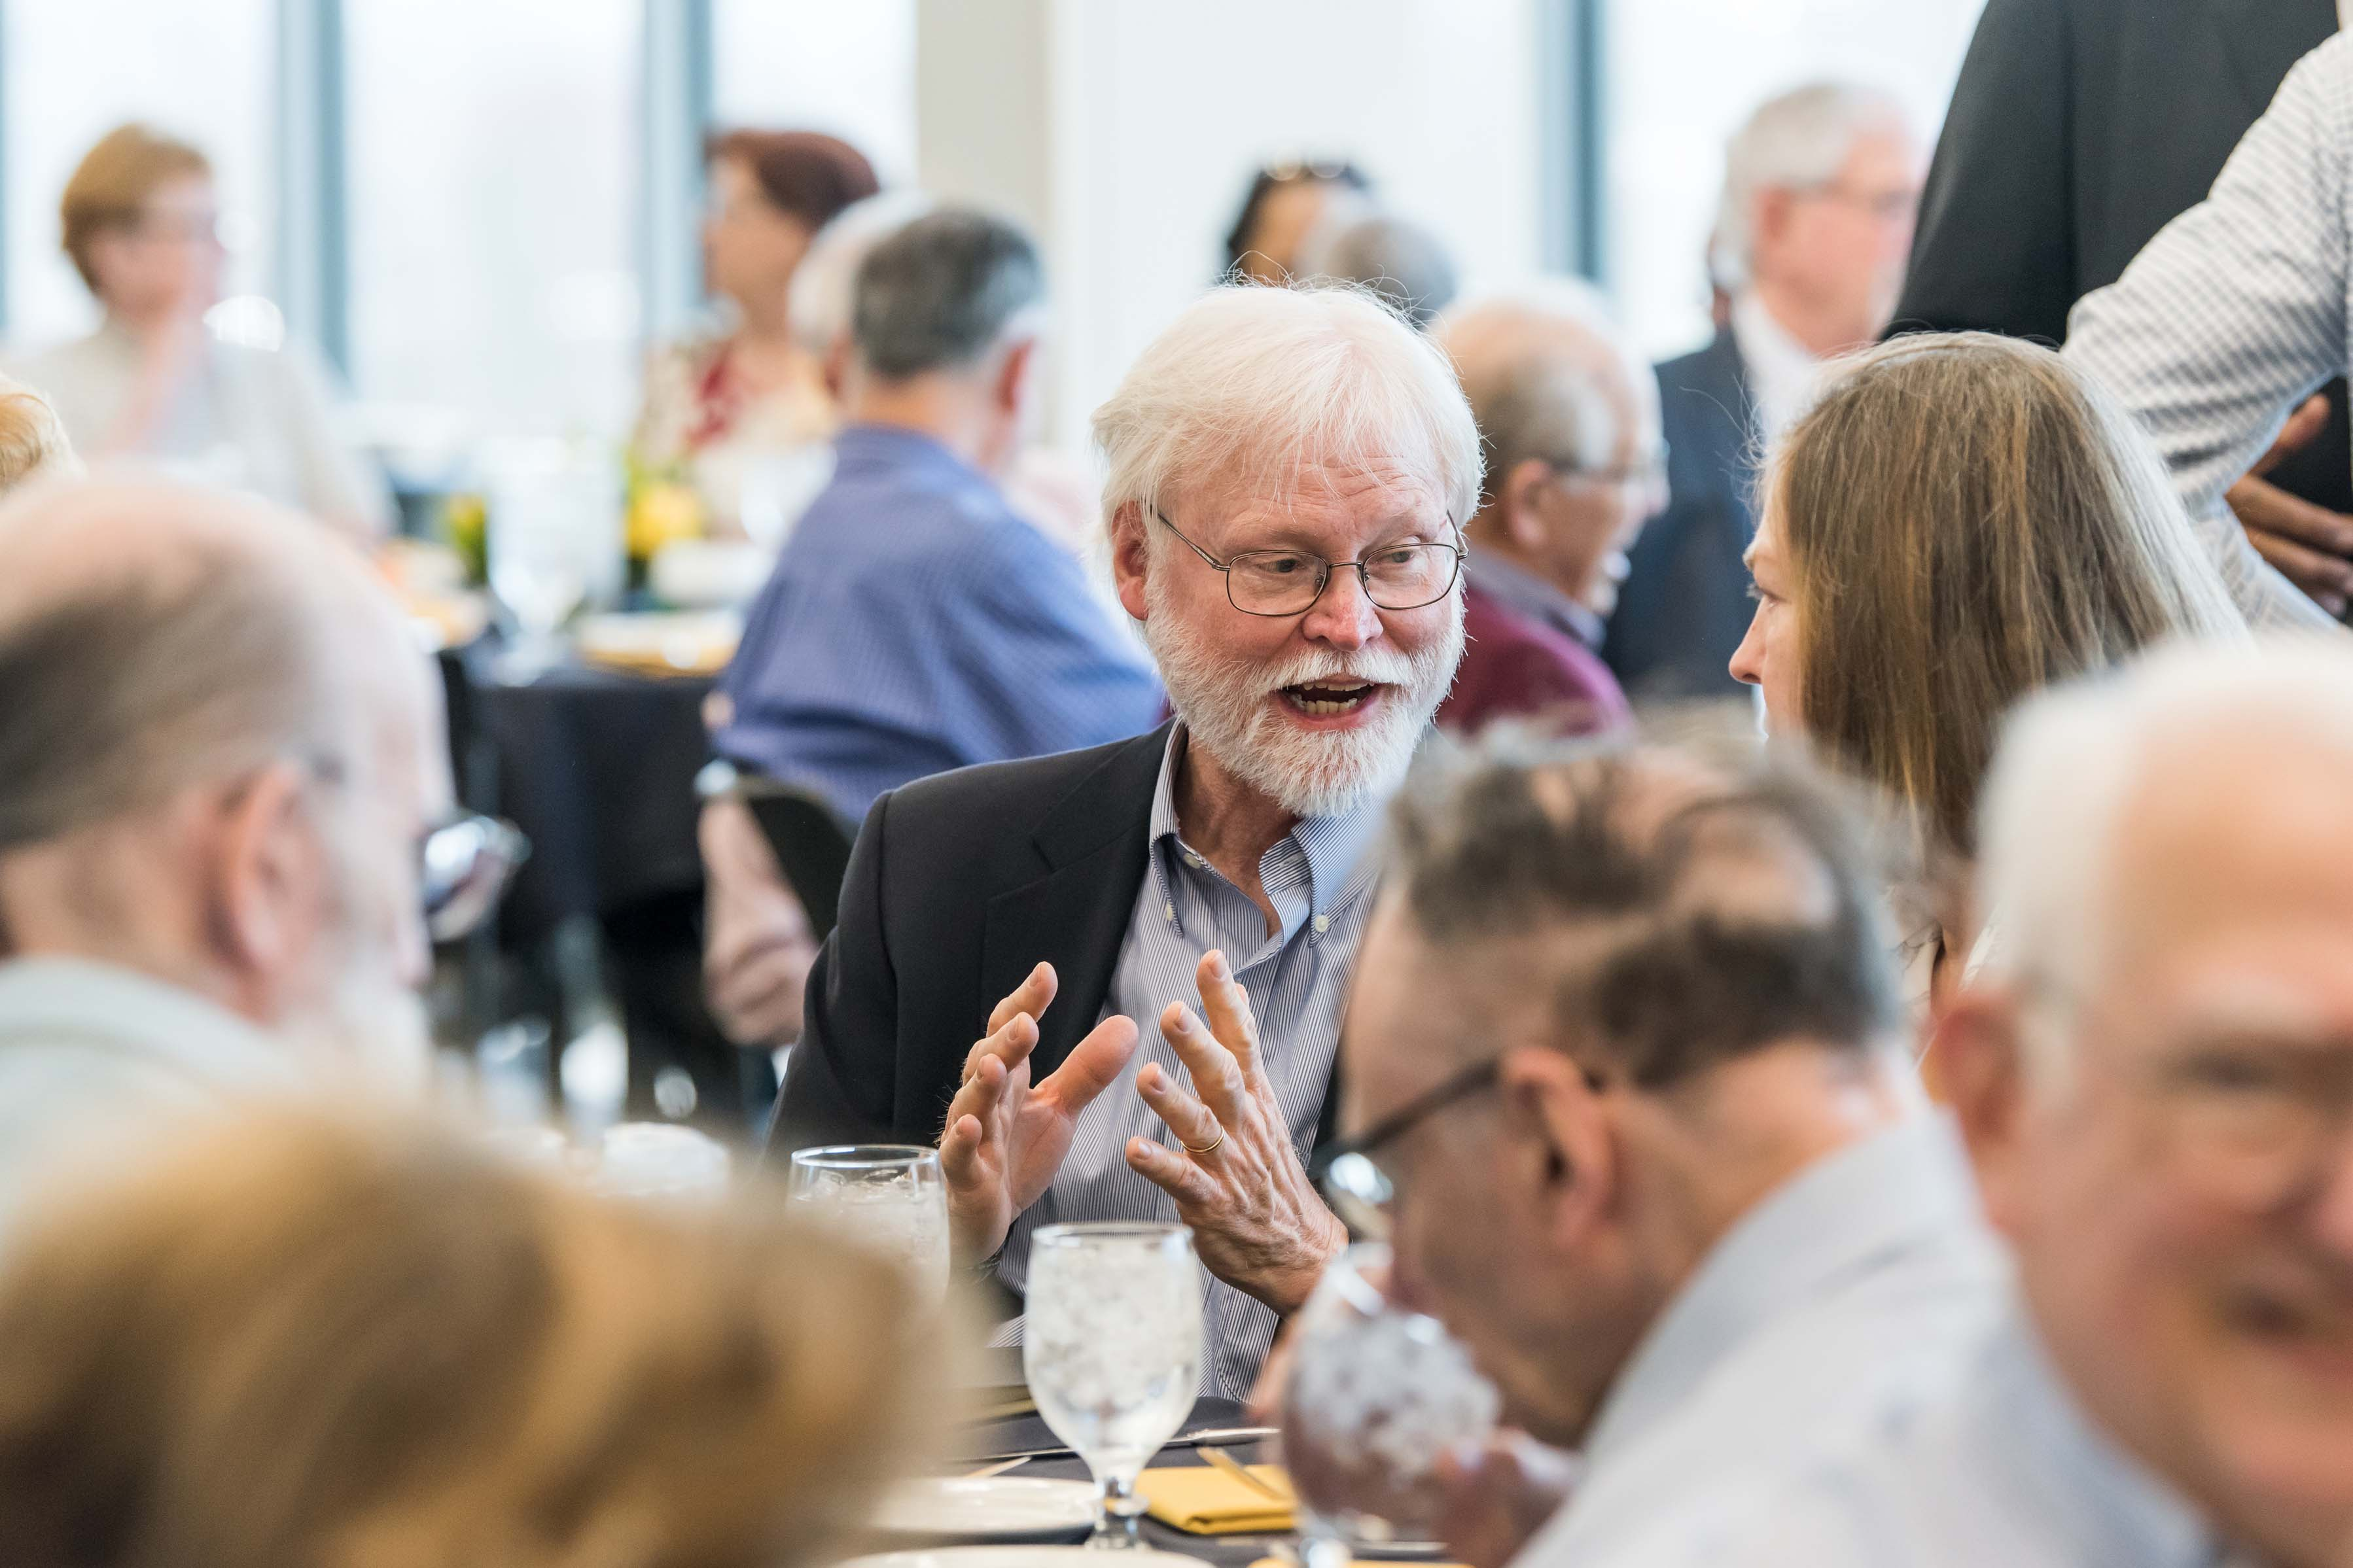 People in deep discussion around table at Wisdom Institute lunch